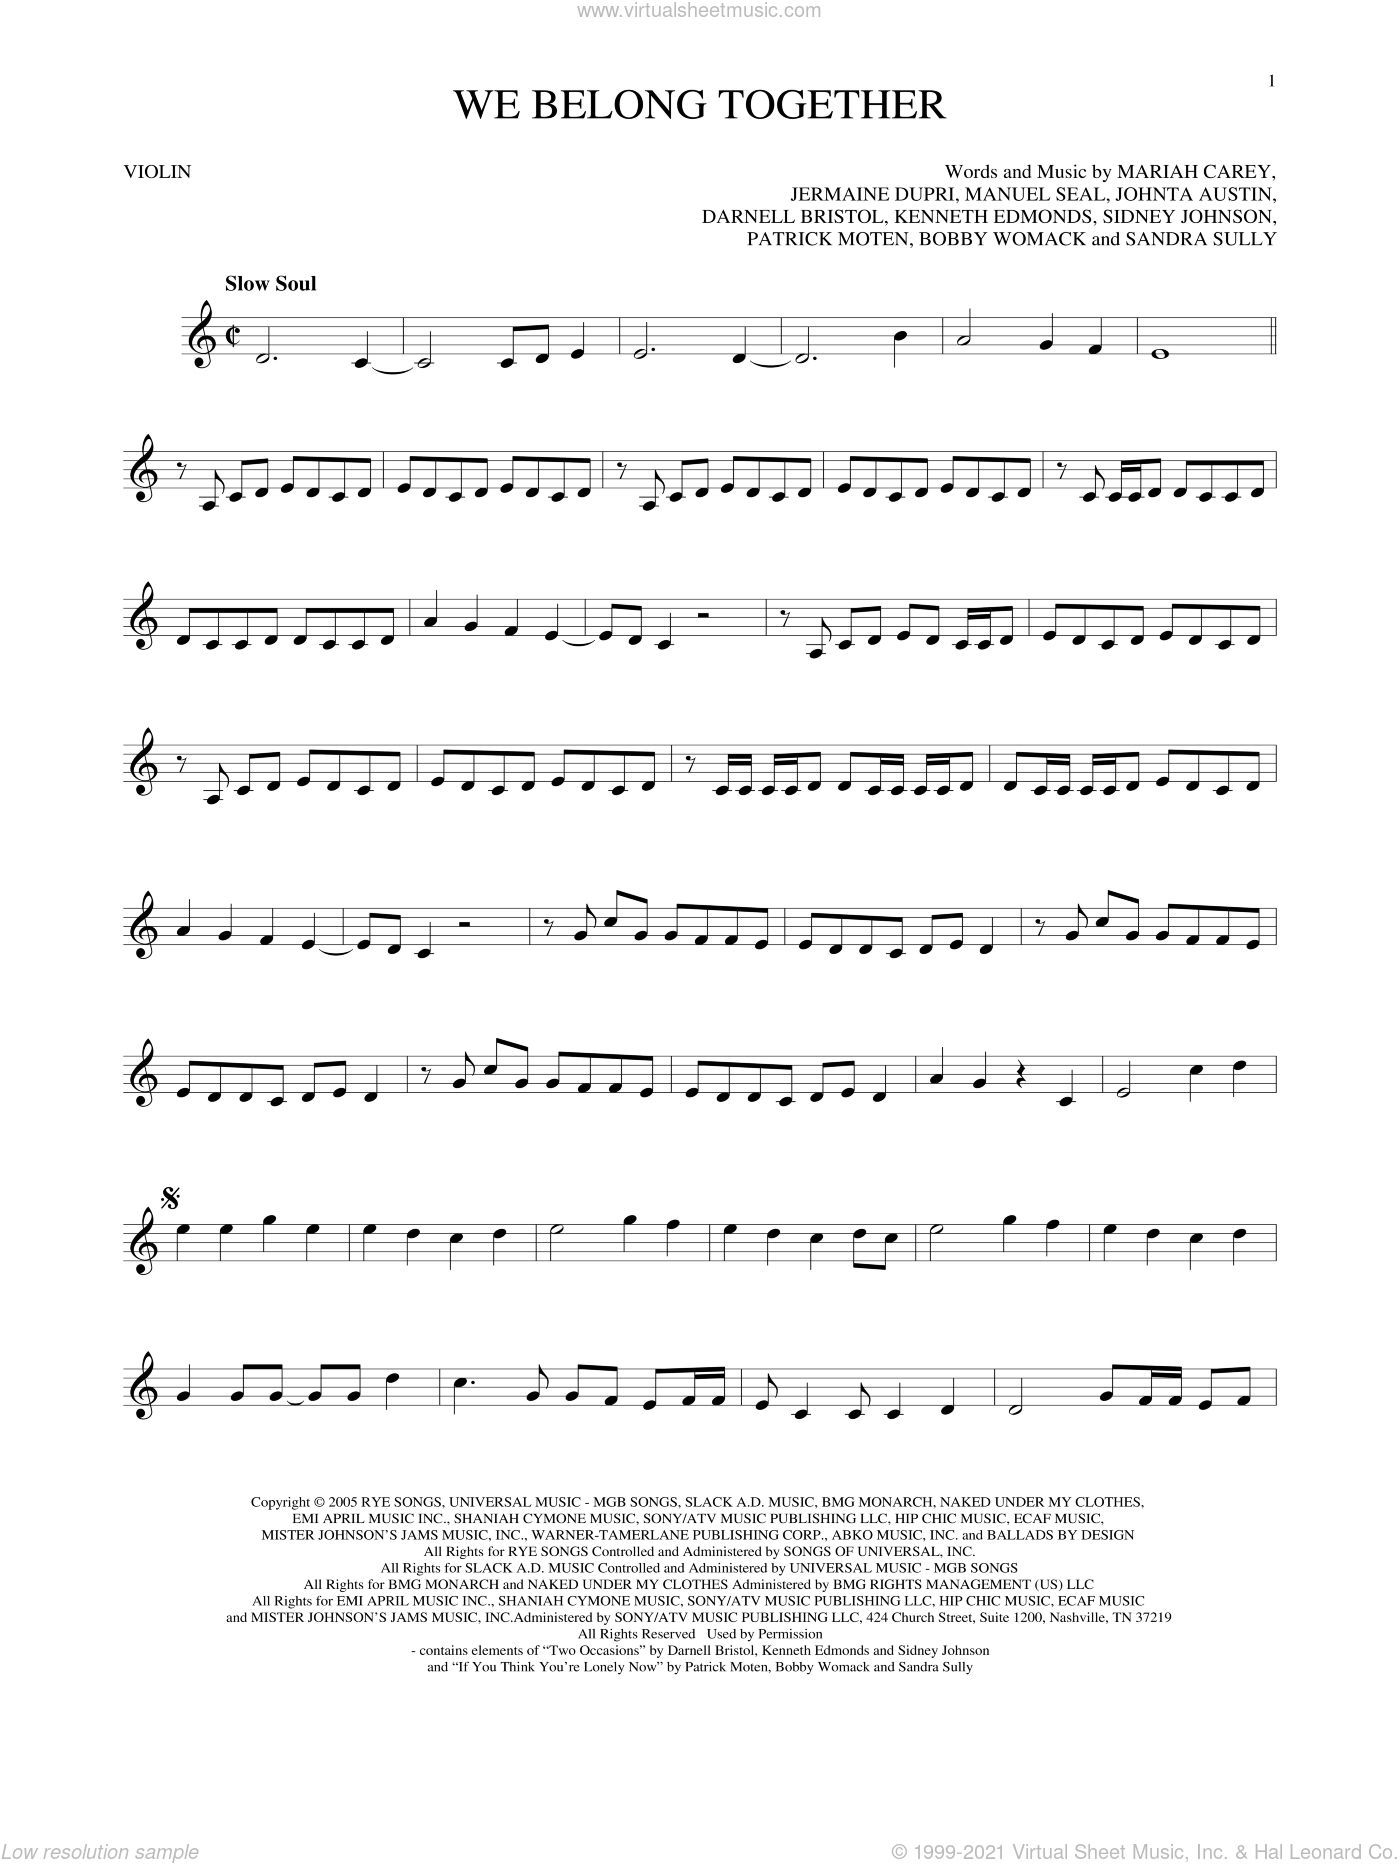 We Belong Together sheet music for violin solo by Mariah Carey